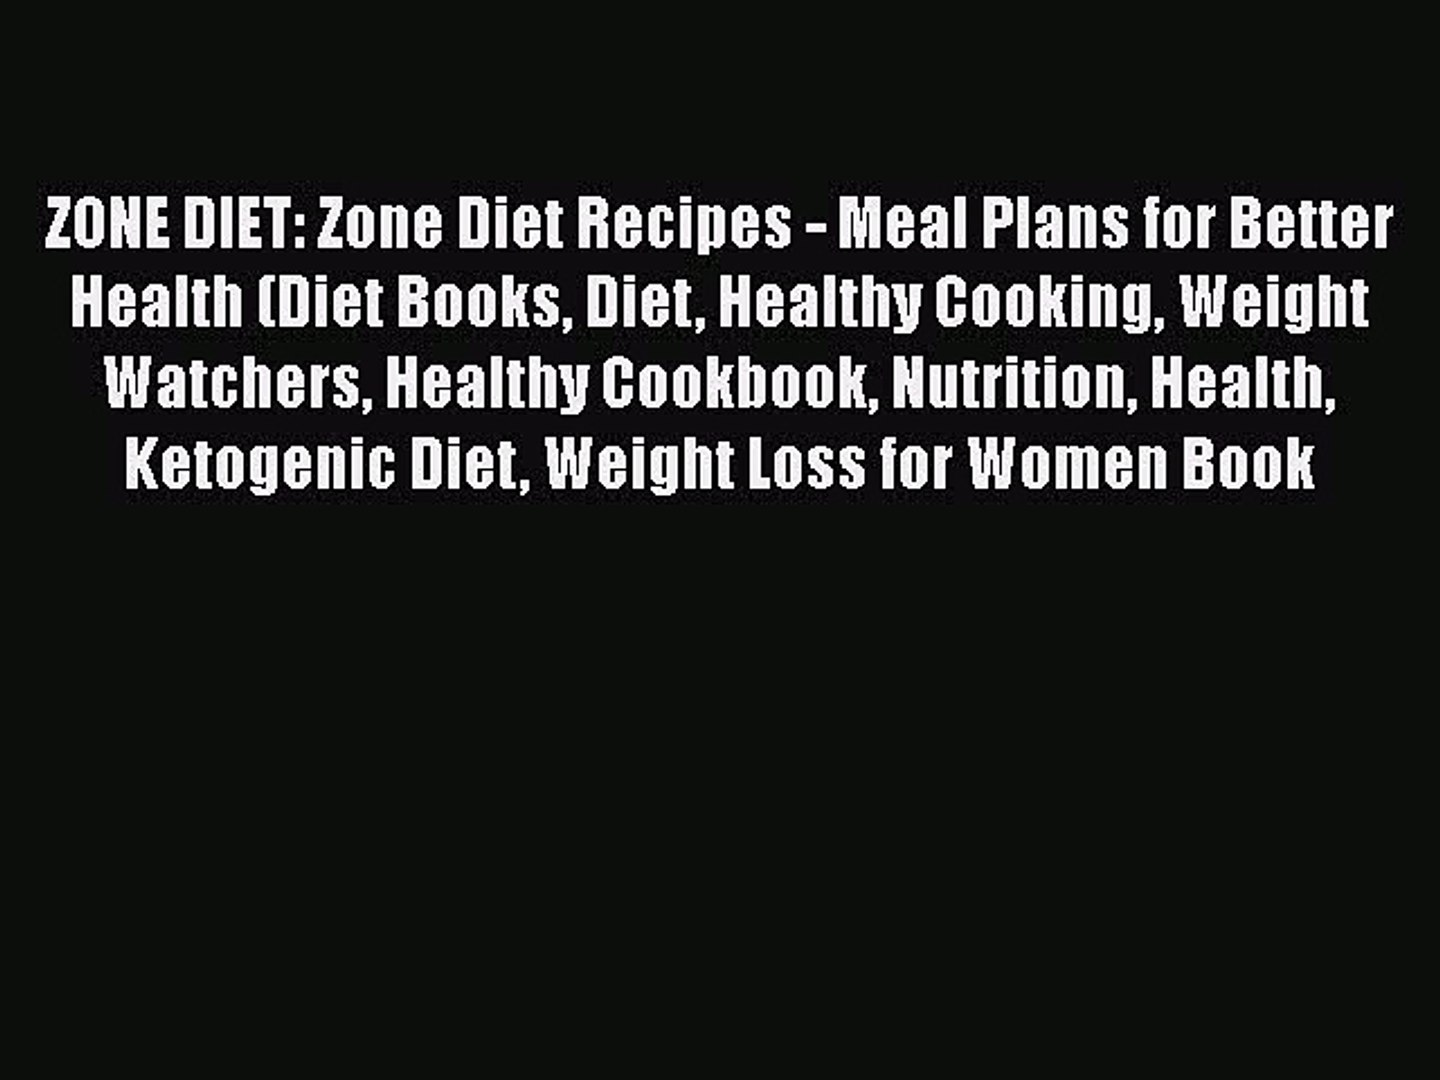 Read ZONE DIET: Zone Diet Recipes - Meal Plans for Better Health (Diet Books Diet Healthy Cooking